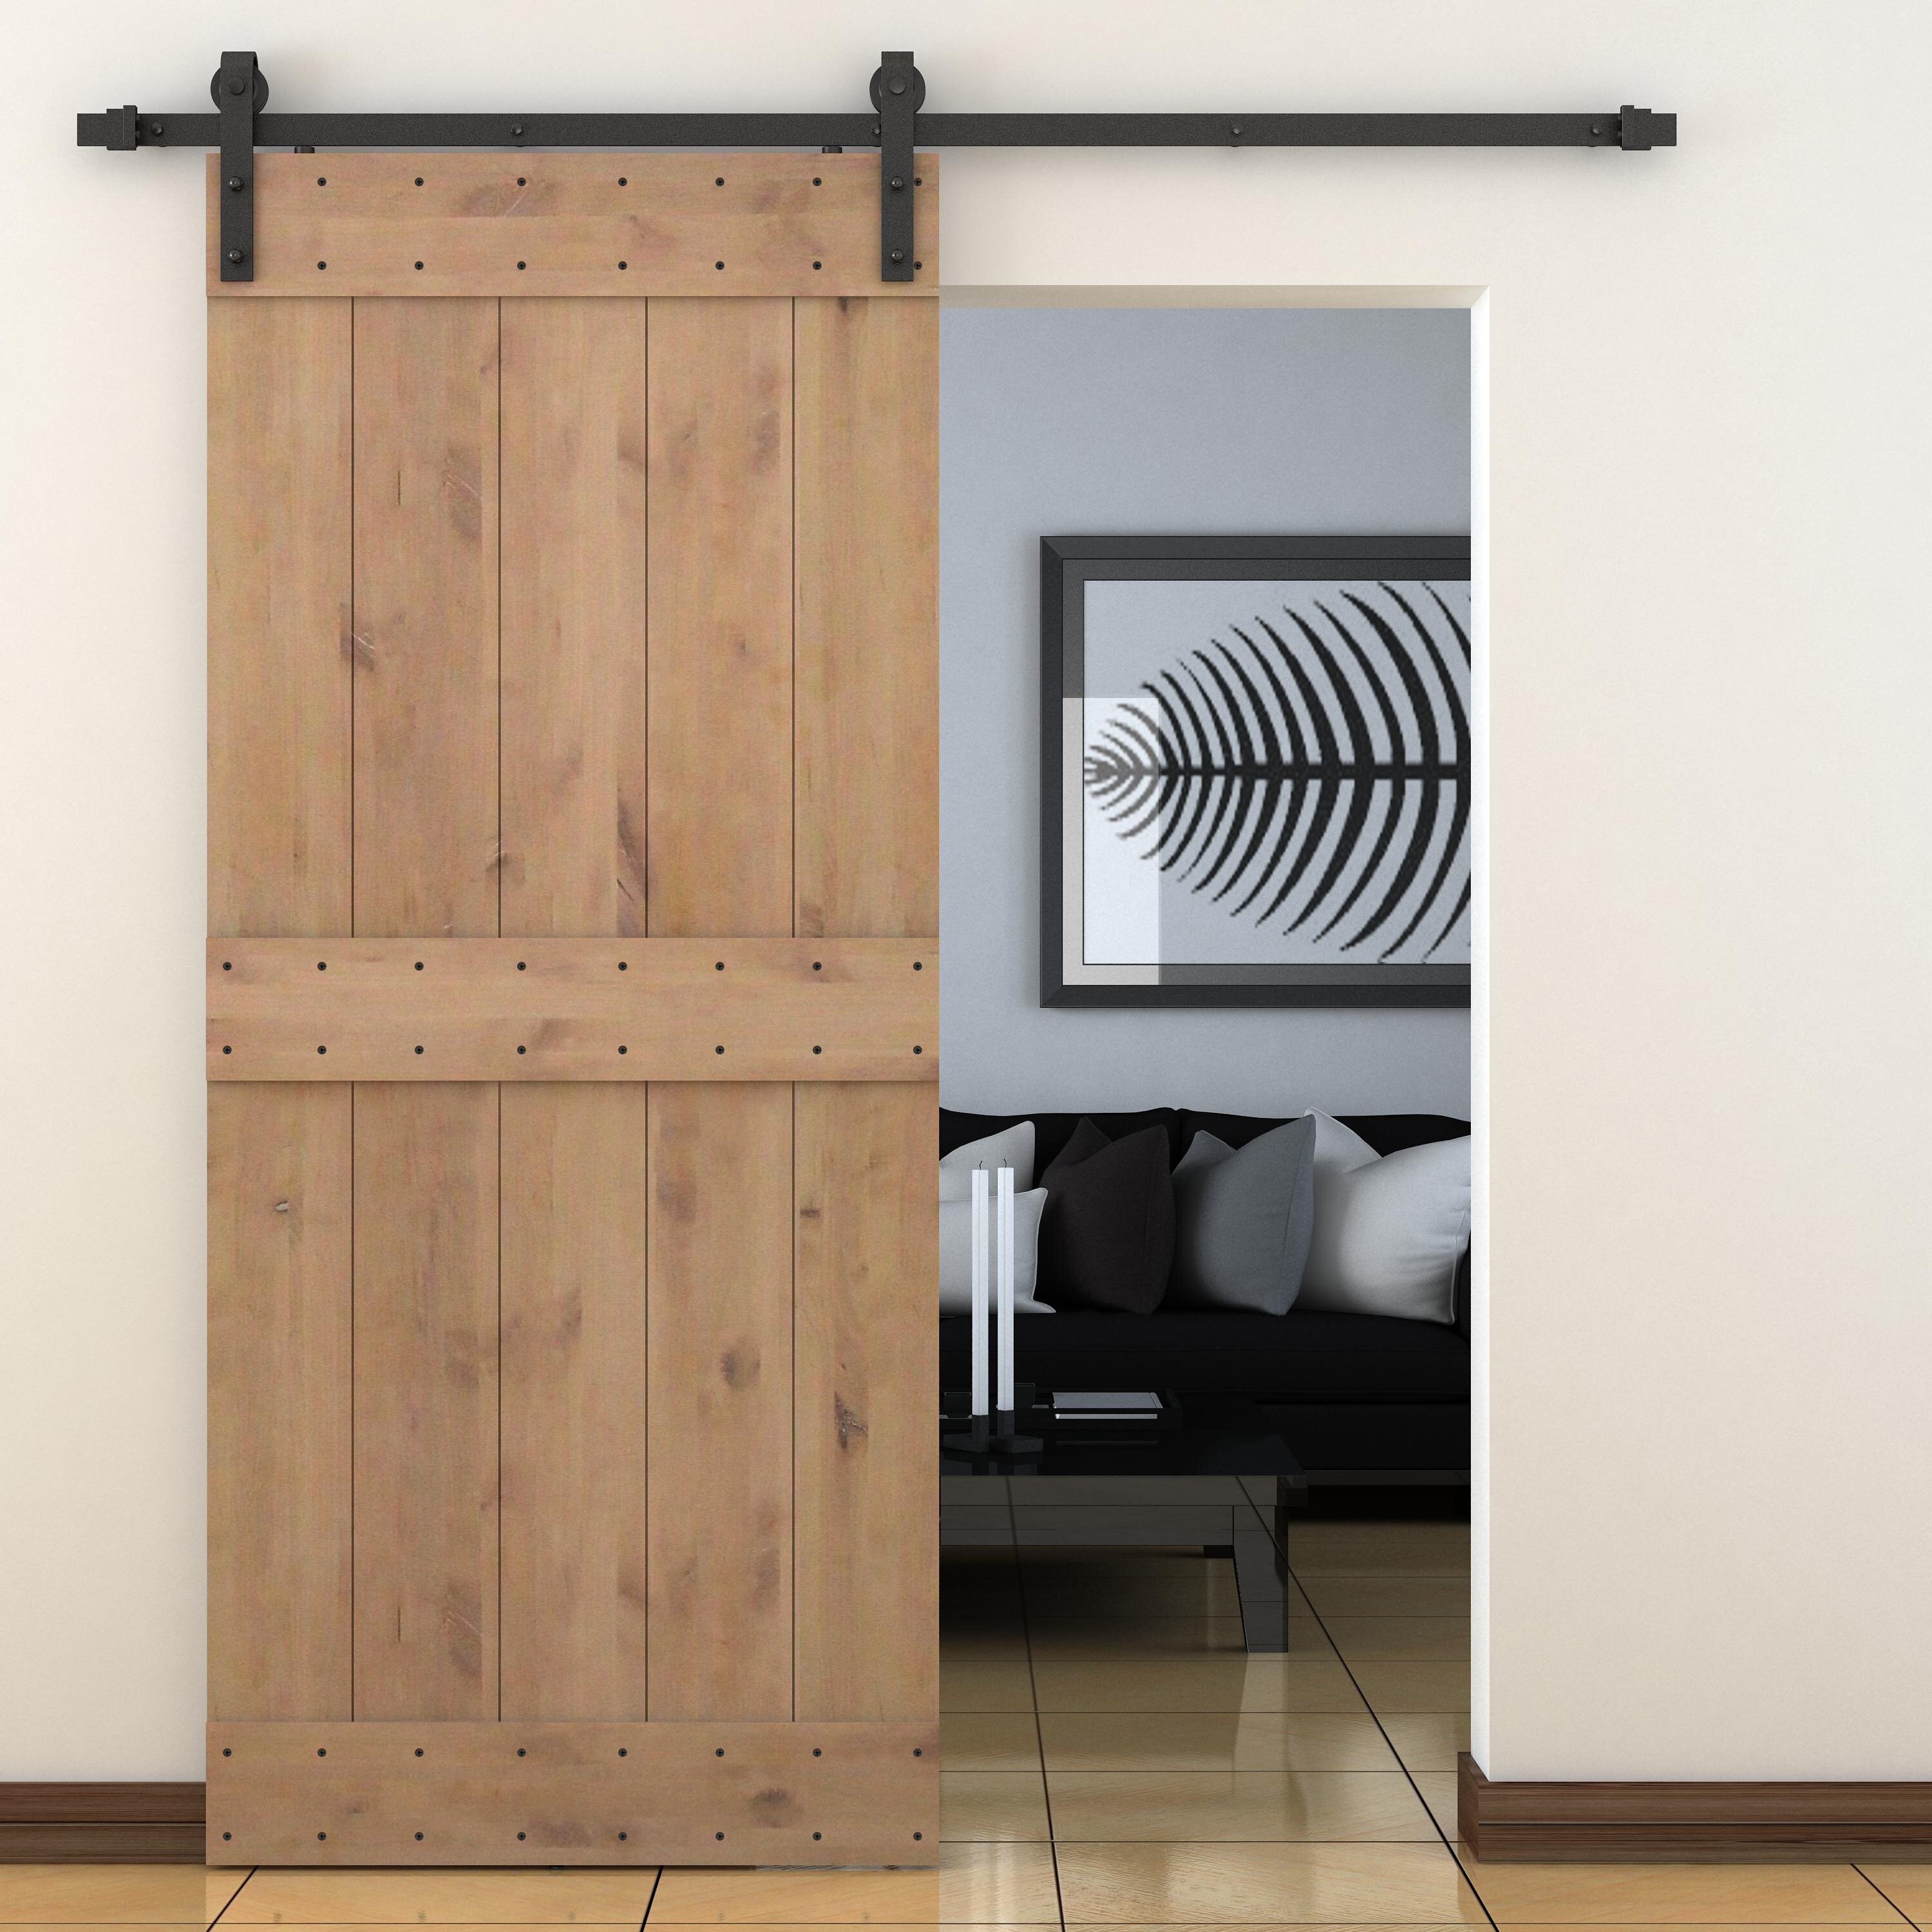 seven barn photos a room of door new furniture on house dining for remodelaholic luxury home barns sliding pictures hardware bypass build